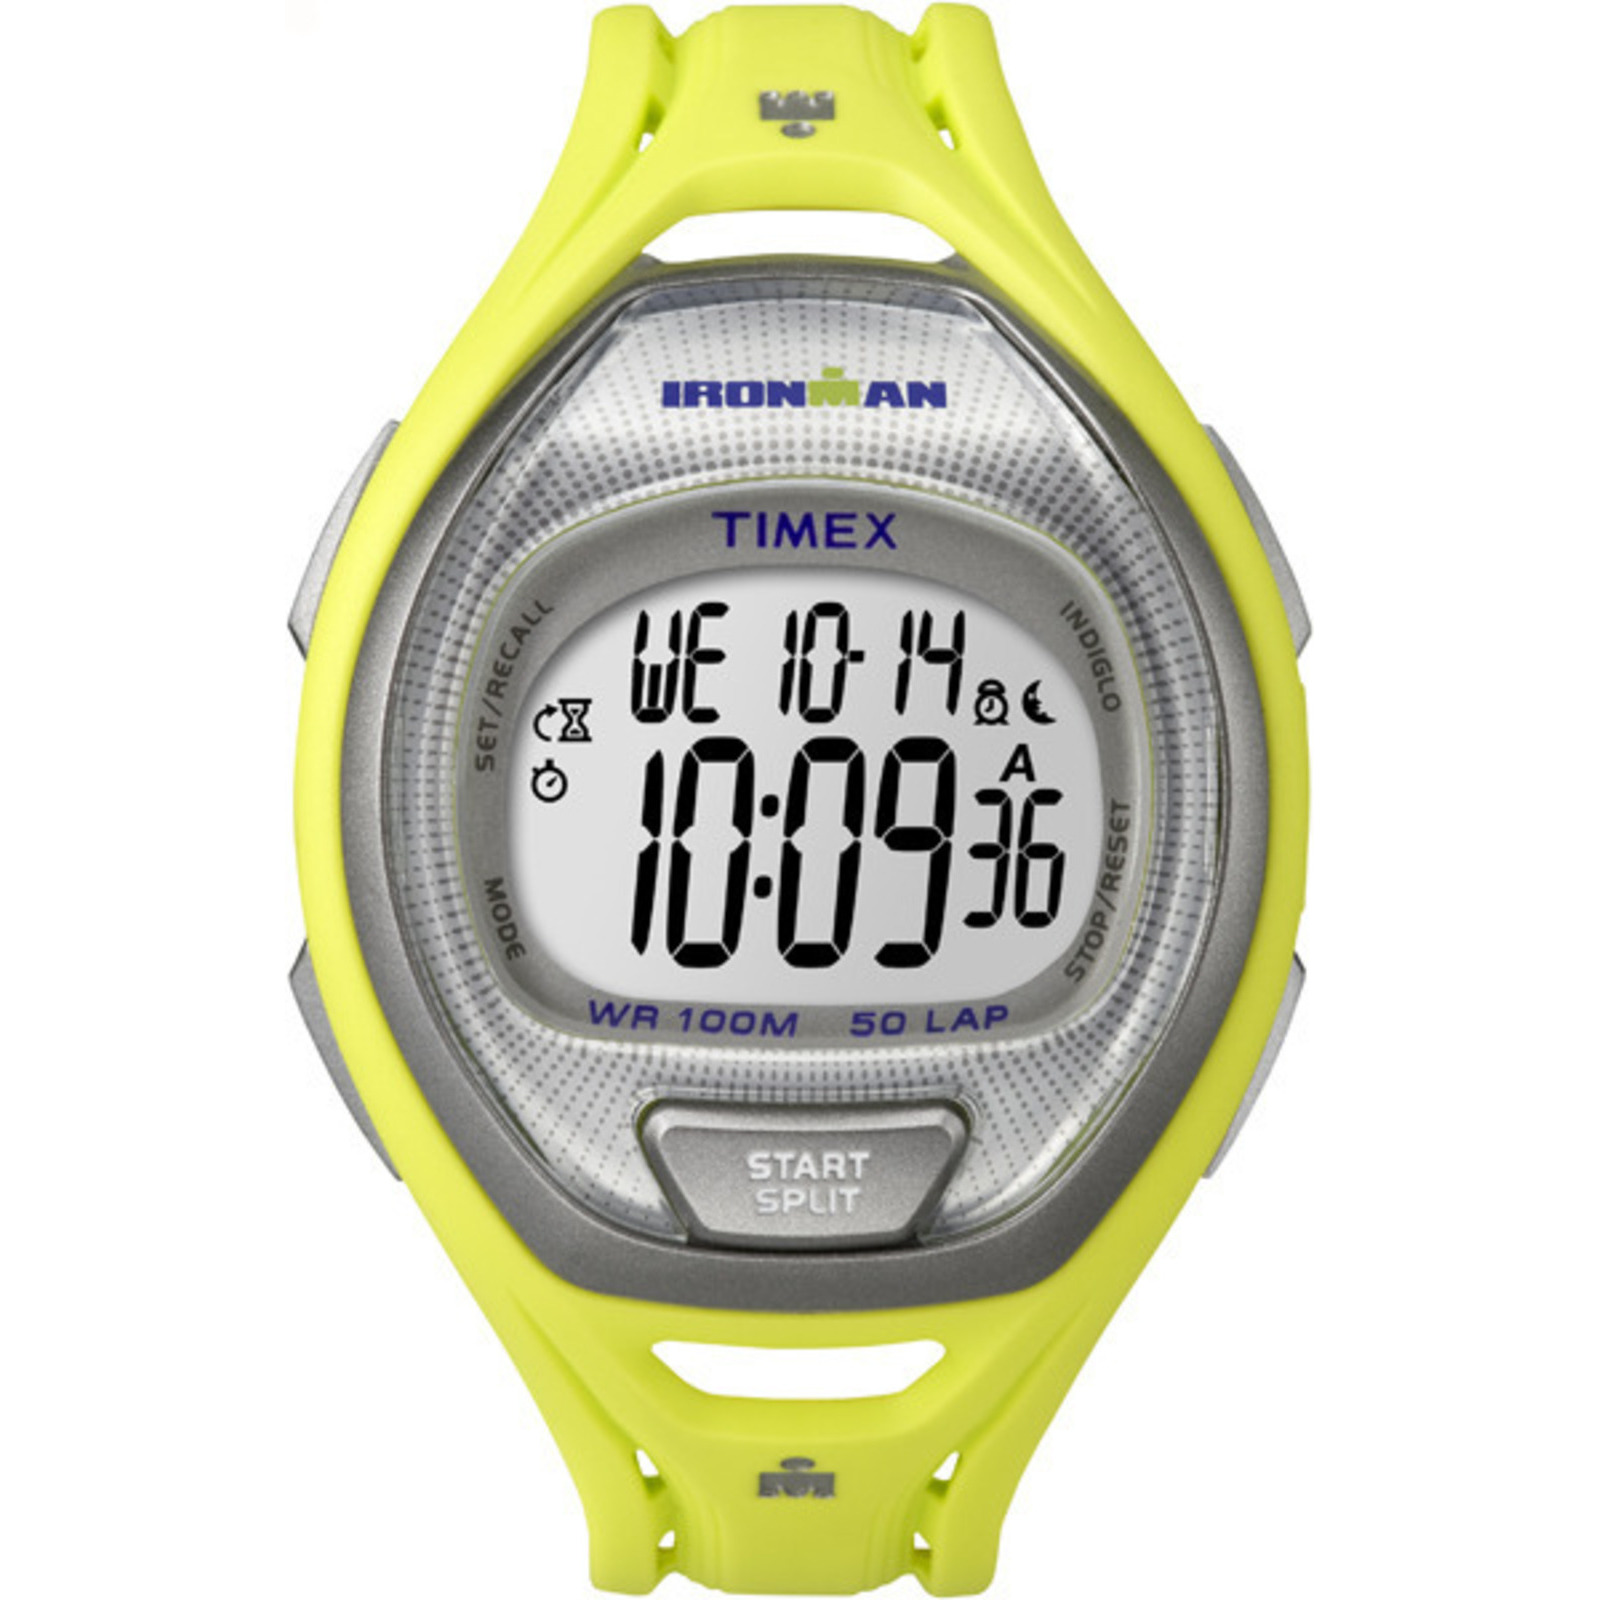 Timex TW5K96100 Ironman Sleek Women's Digital Watch